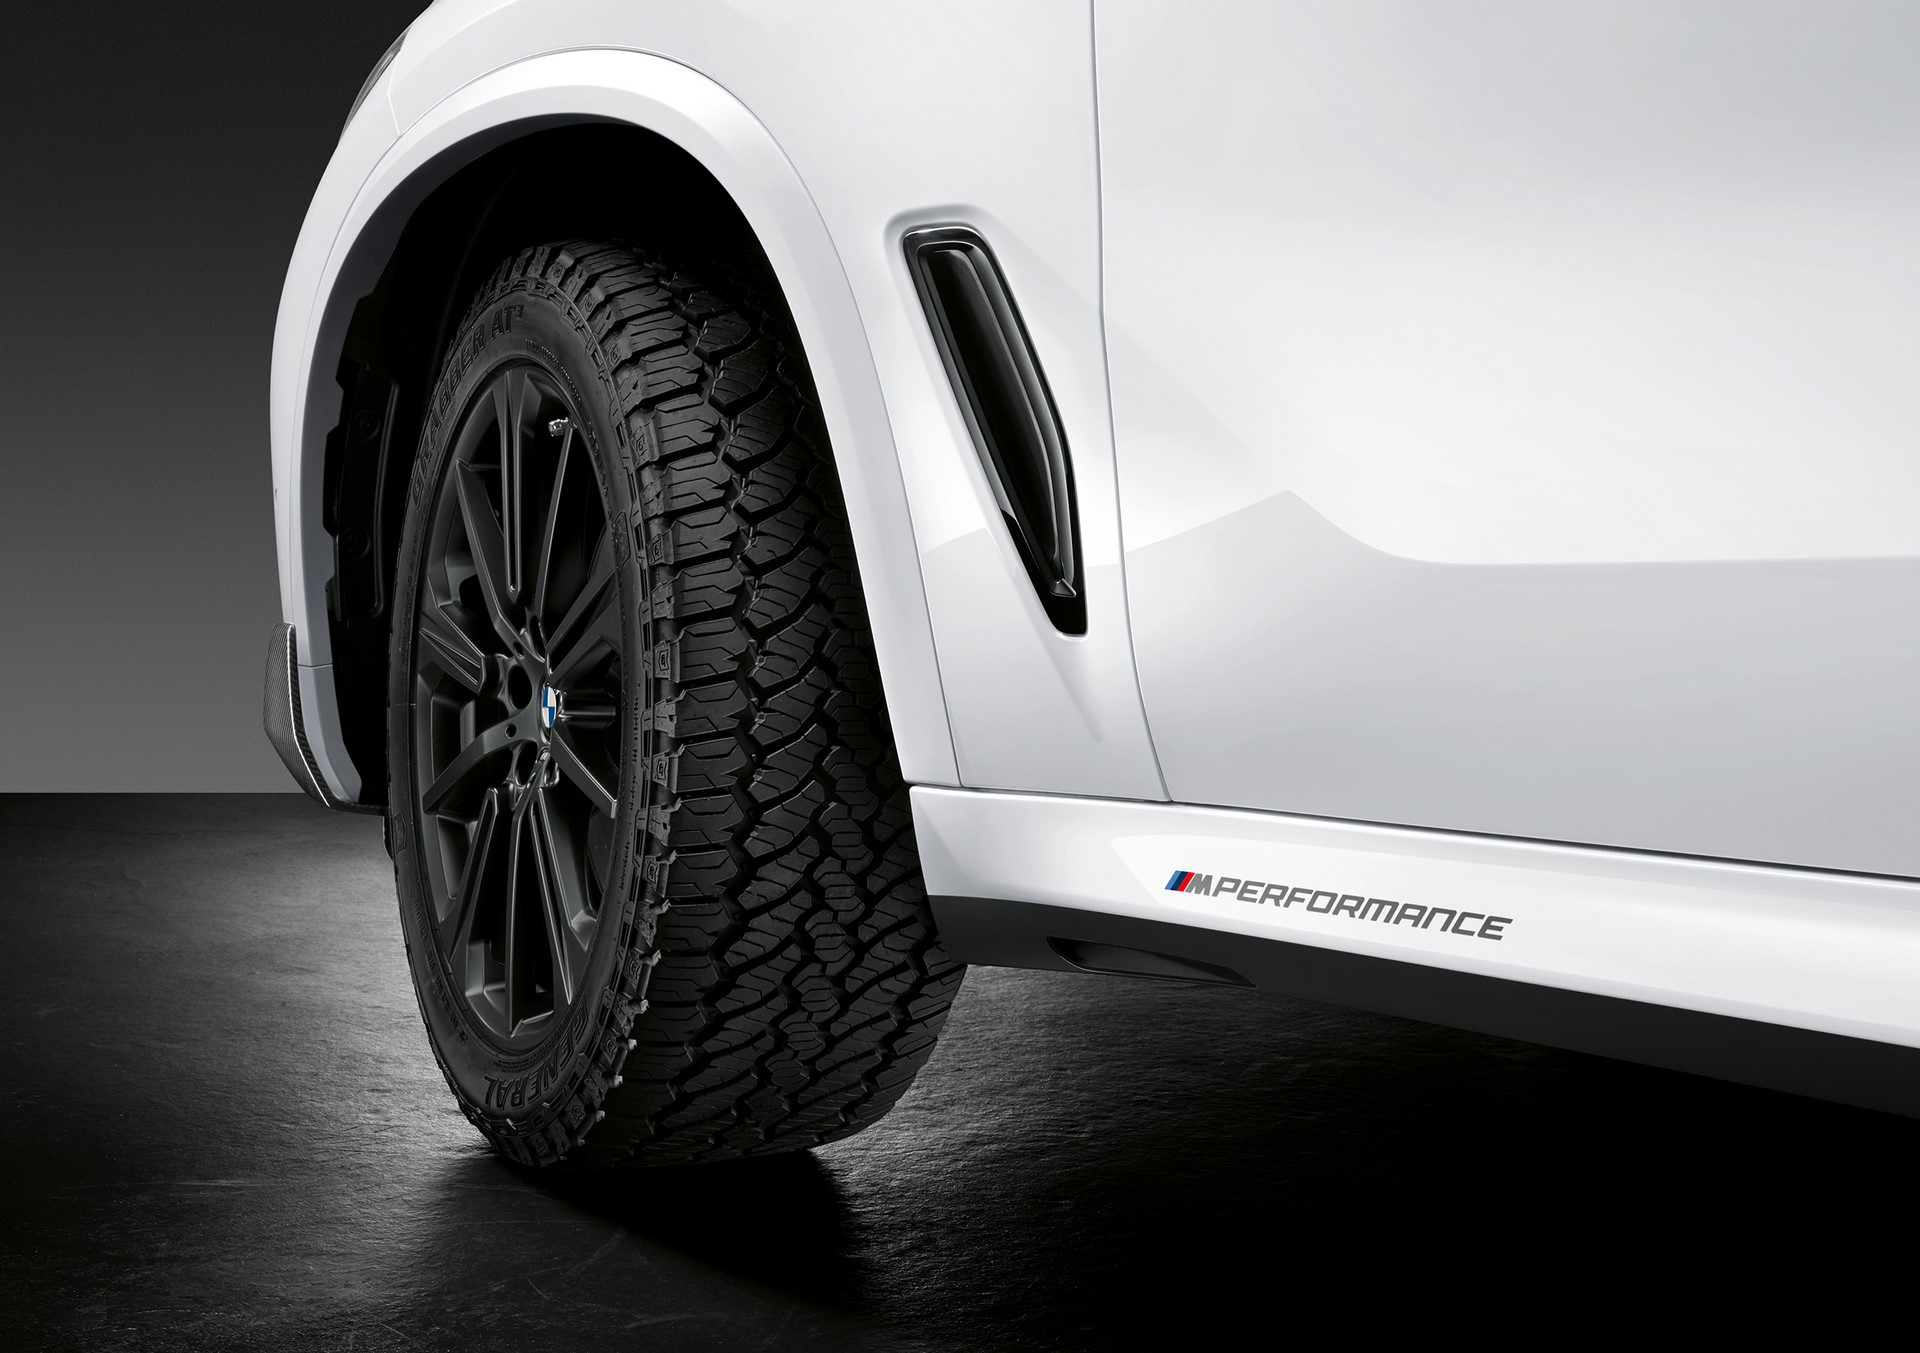 BMW X5 with M Performance parts (7)